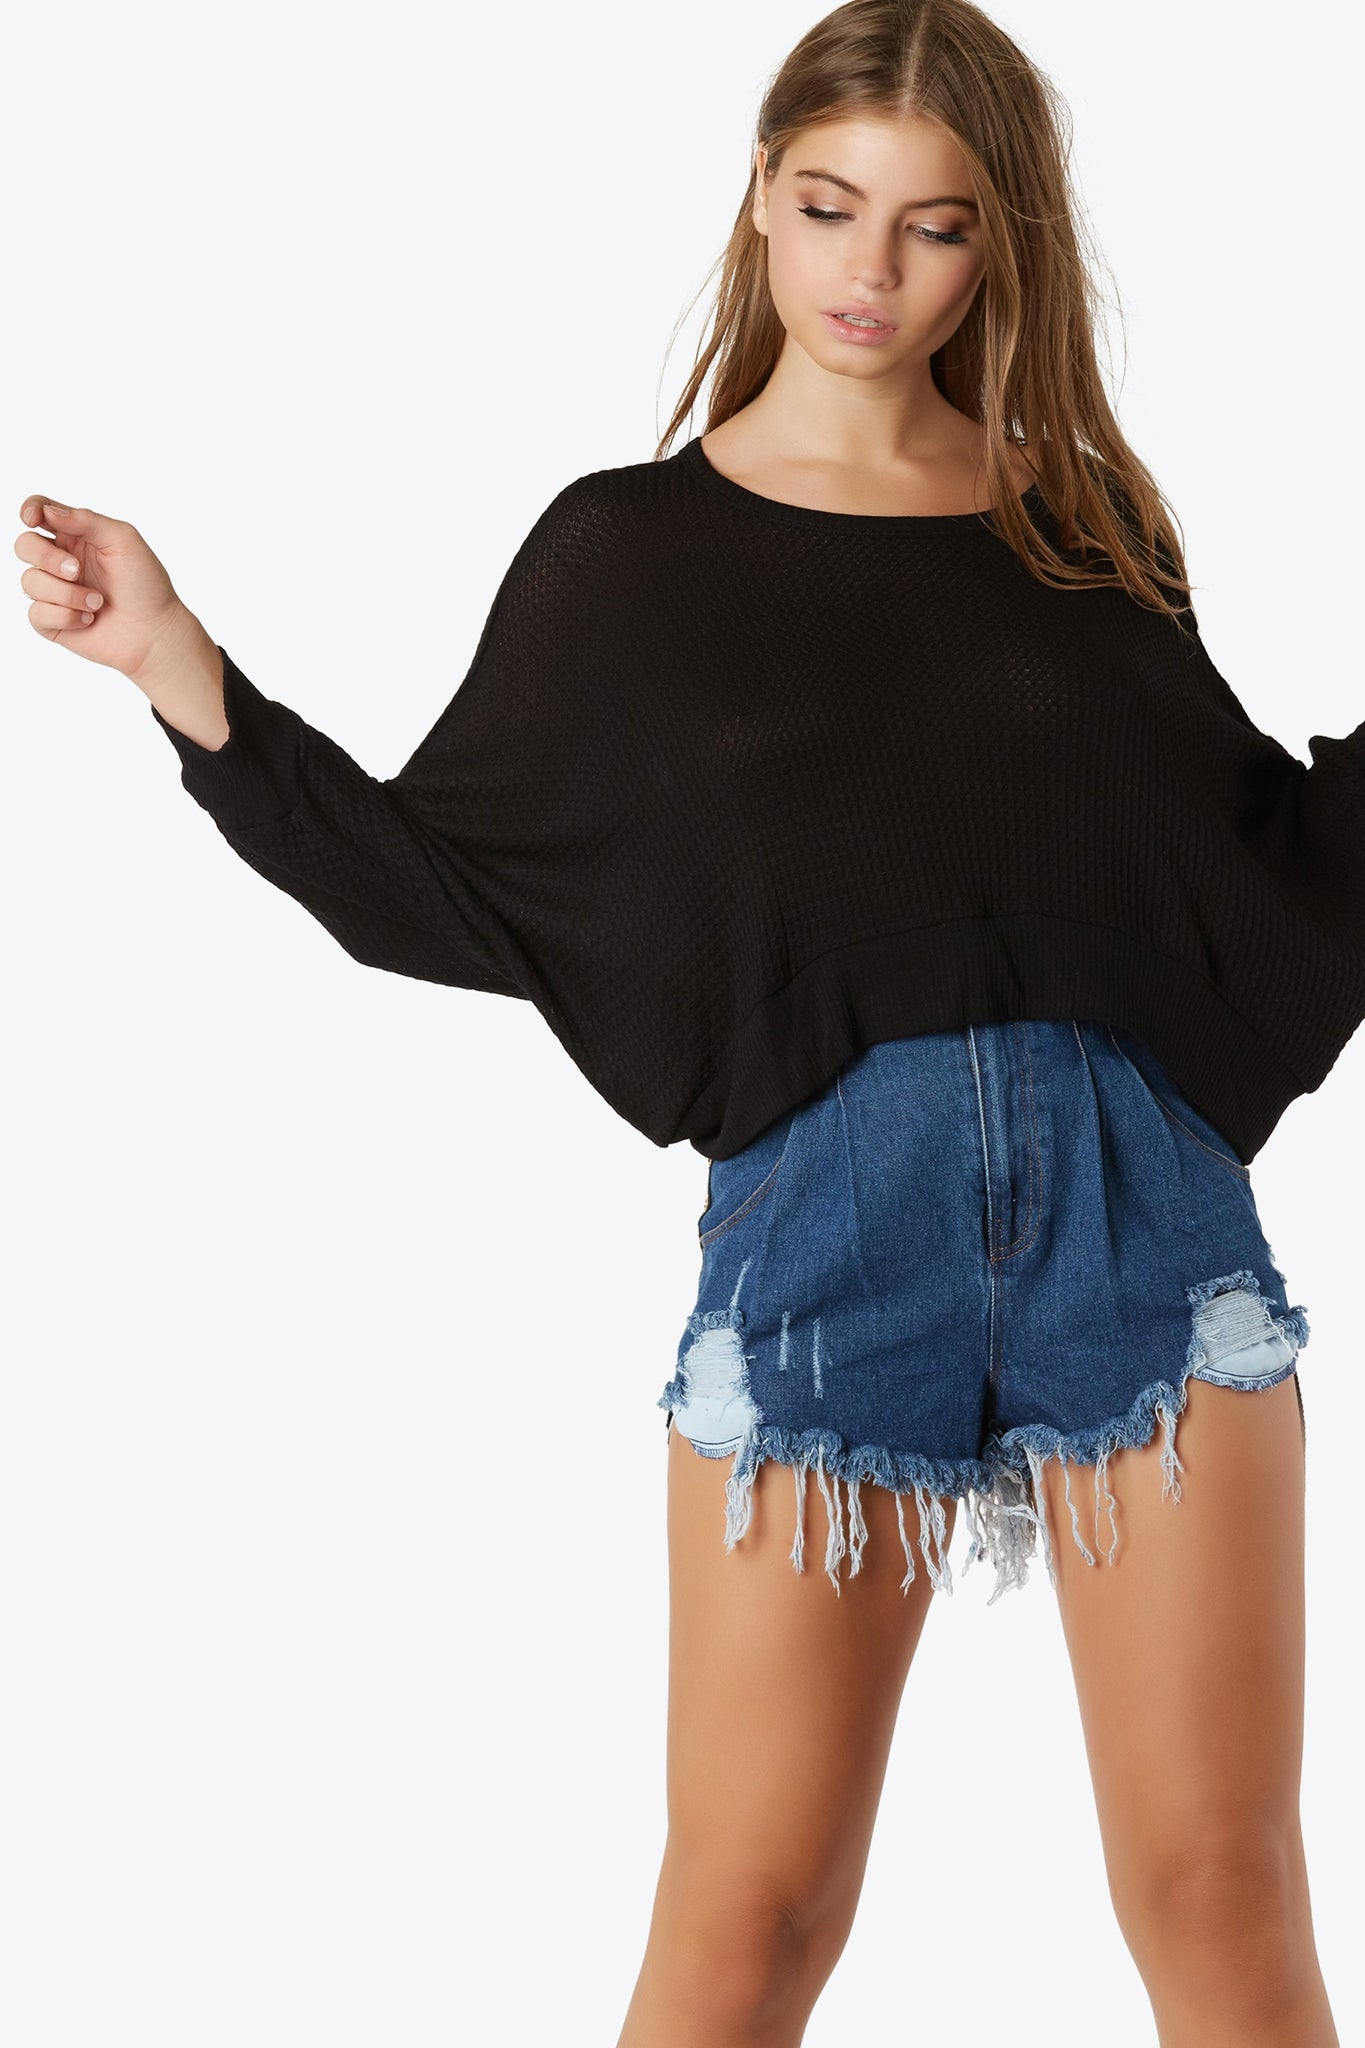 Super comfy waffle knit top with batwing sleeves. Oversized sleeves with rounded neckline and cut out back.